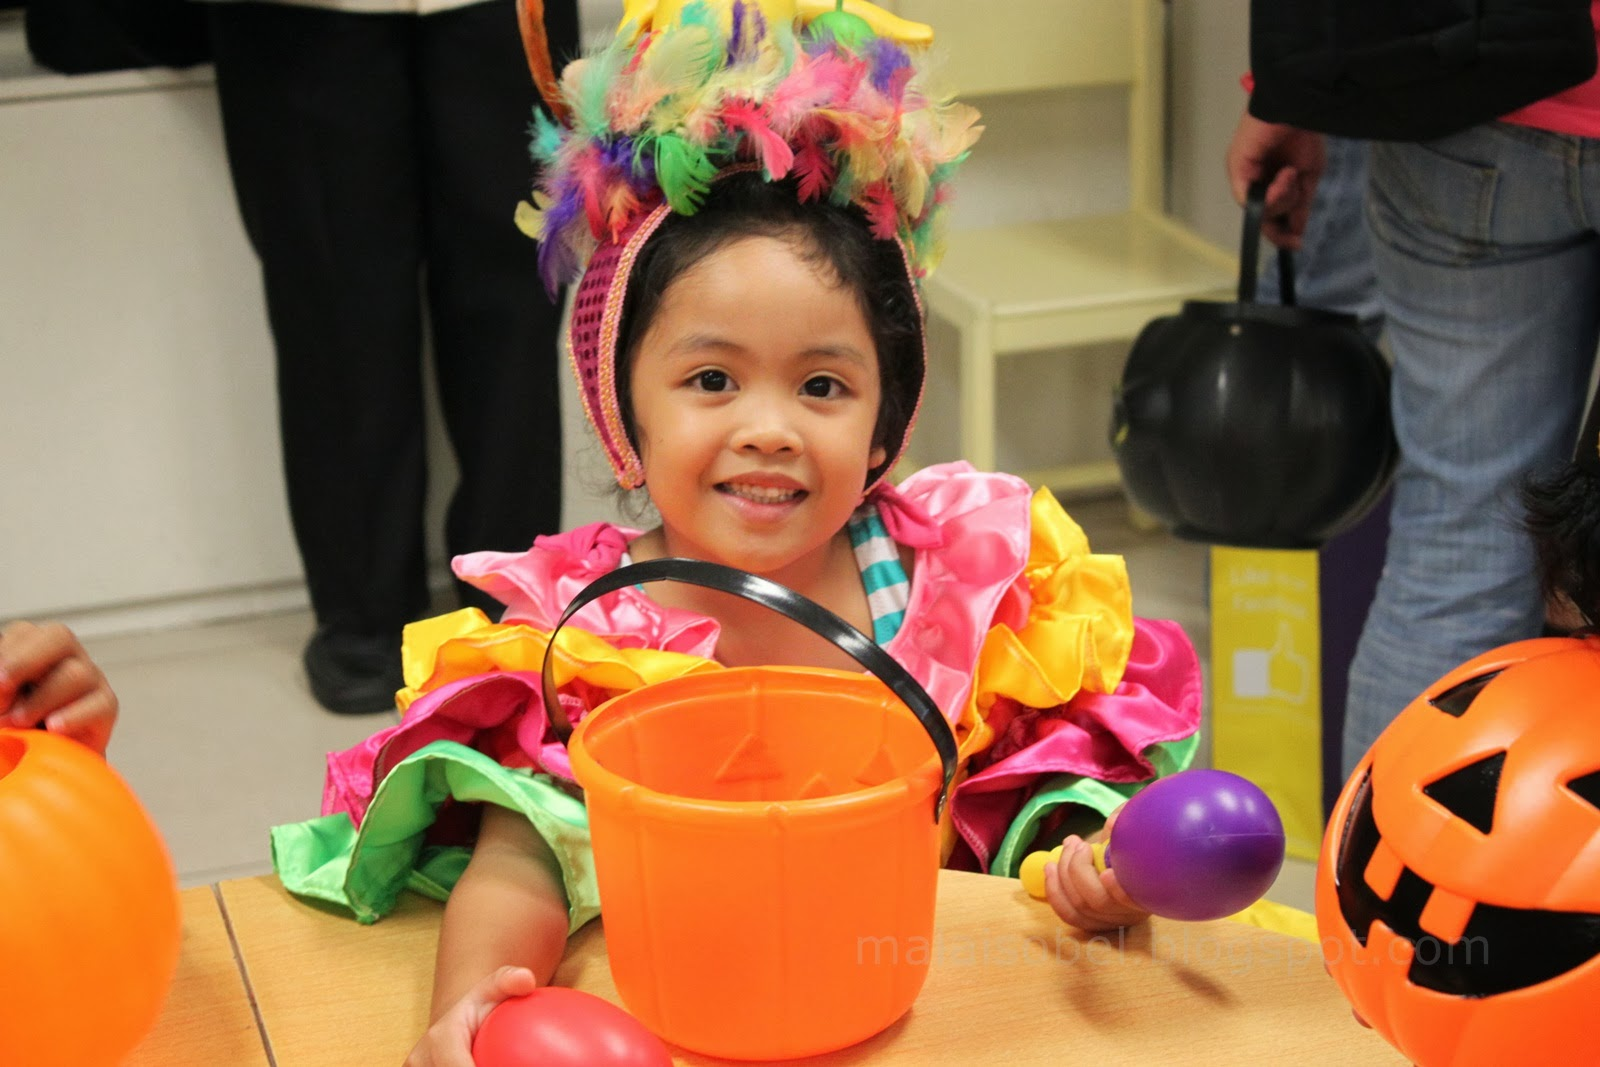 You rocked that Brazilian costume! Our daddy had his share of milestone on this day too. It was the first time he came to school with the kid on his own.  sc 1 st  Chronicles of Maia & Chronicles of Maia: United Nations Day - Winning Best Costume